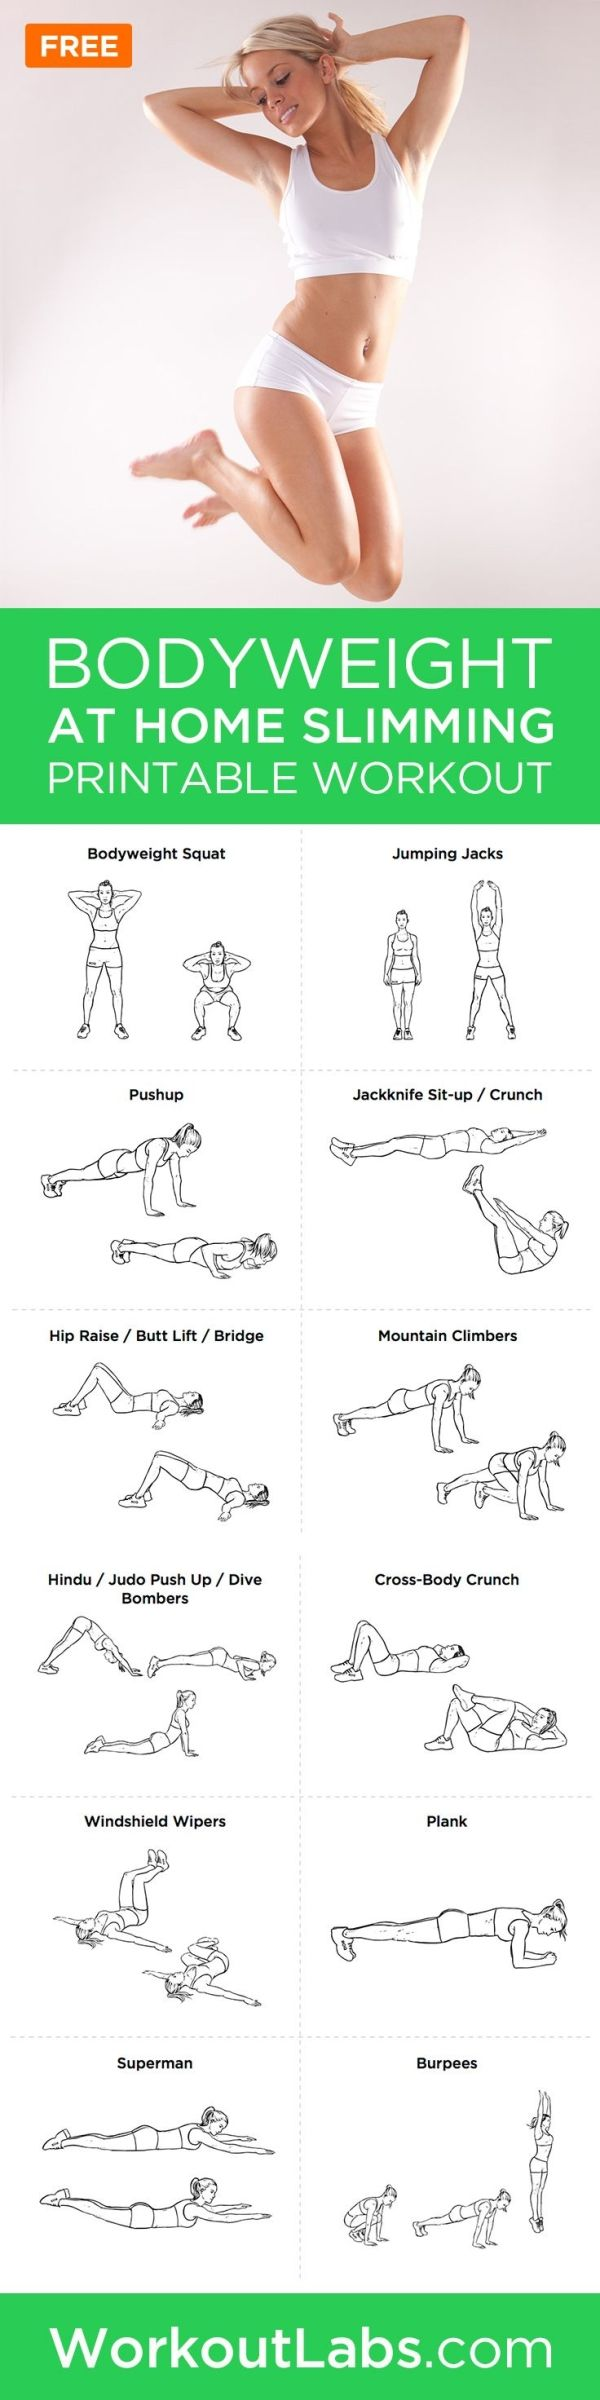 Bodyweight At-Home Full Body Slimming Workout Plan – If you want to step away from the gym and still maintain your fitness level while burning fat, this home workout program is for you. by sally tb